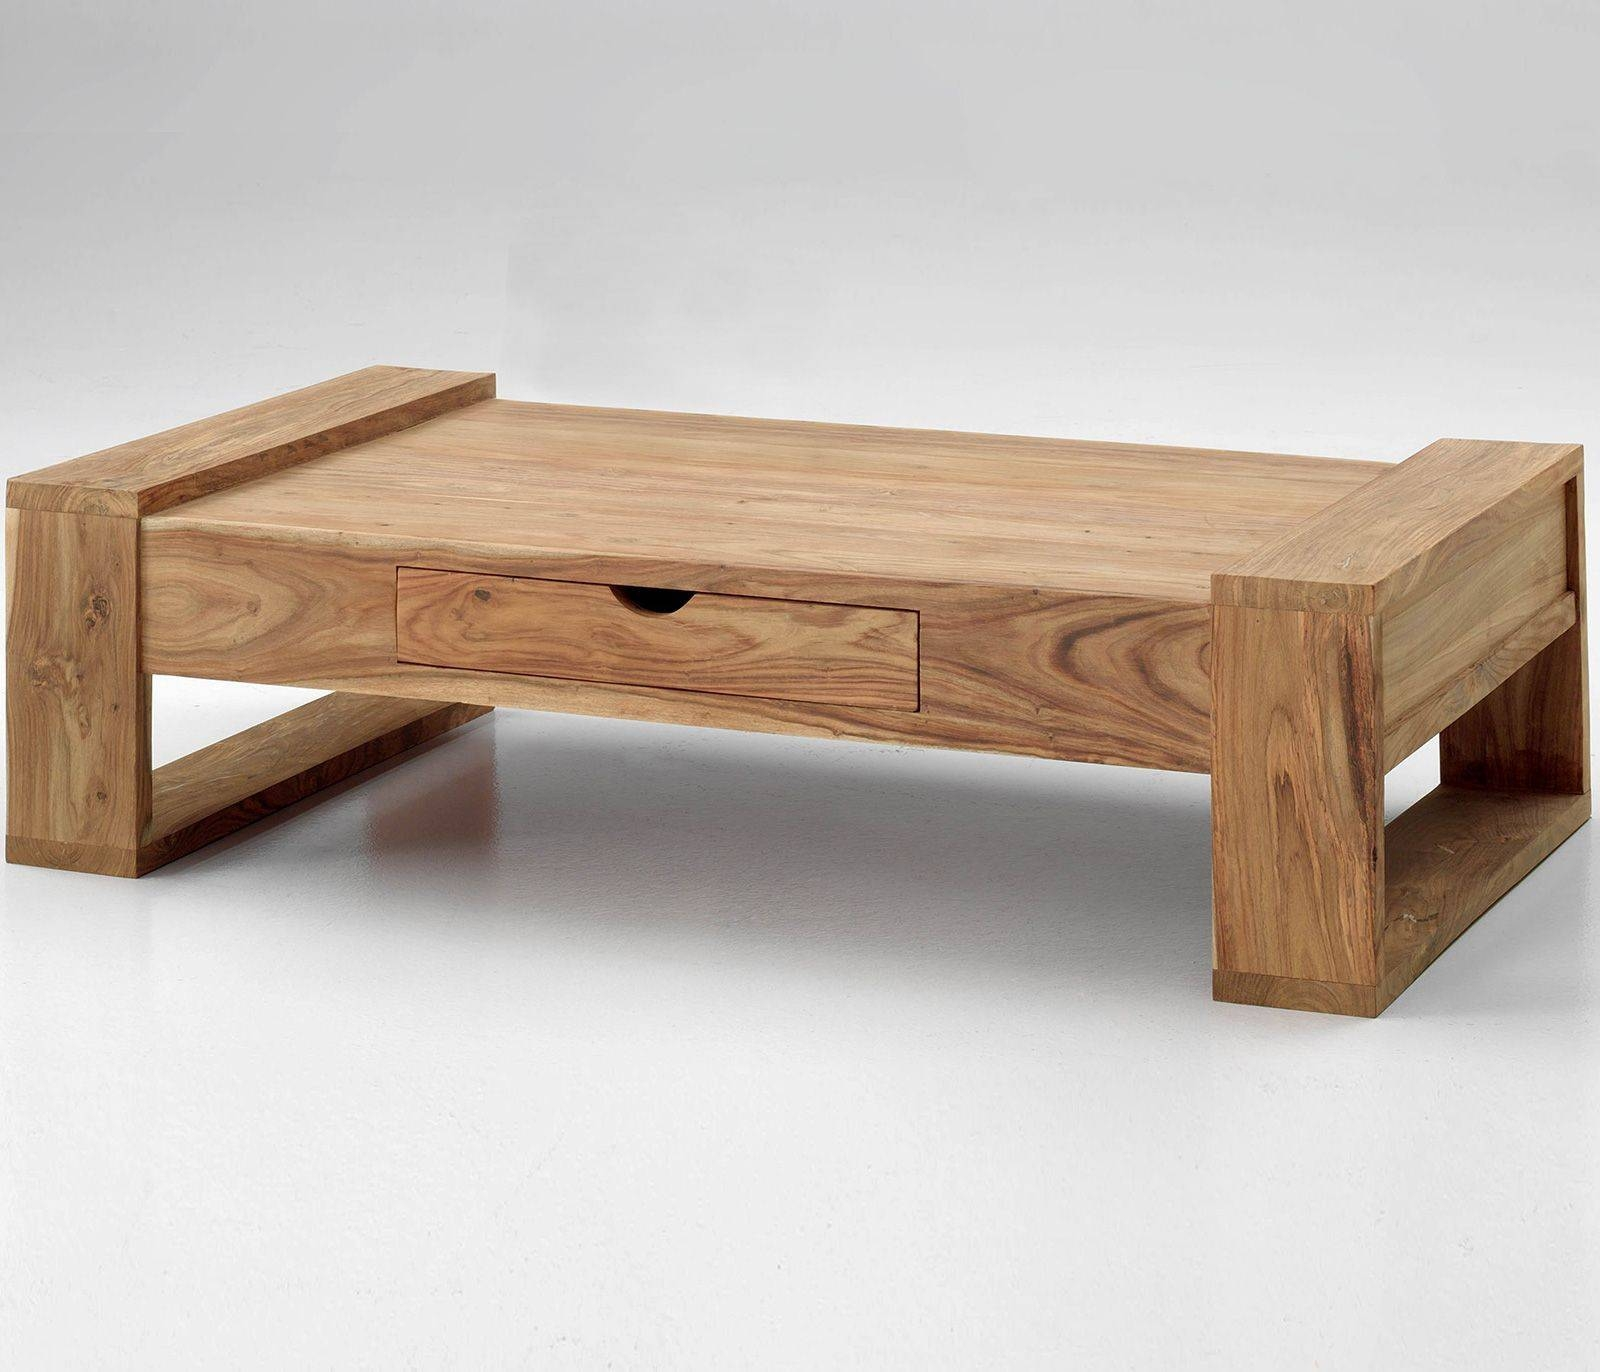 Coffee Tables: Popular Wooden Coffee Tables Design Ideas Wood inside Hardwood Coffee Tables With Storage (Image 10 of 30)